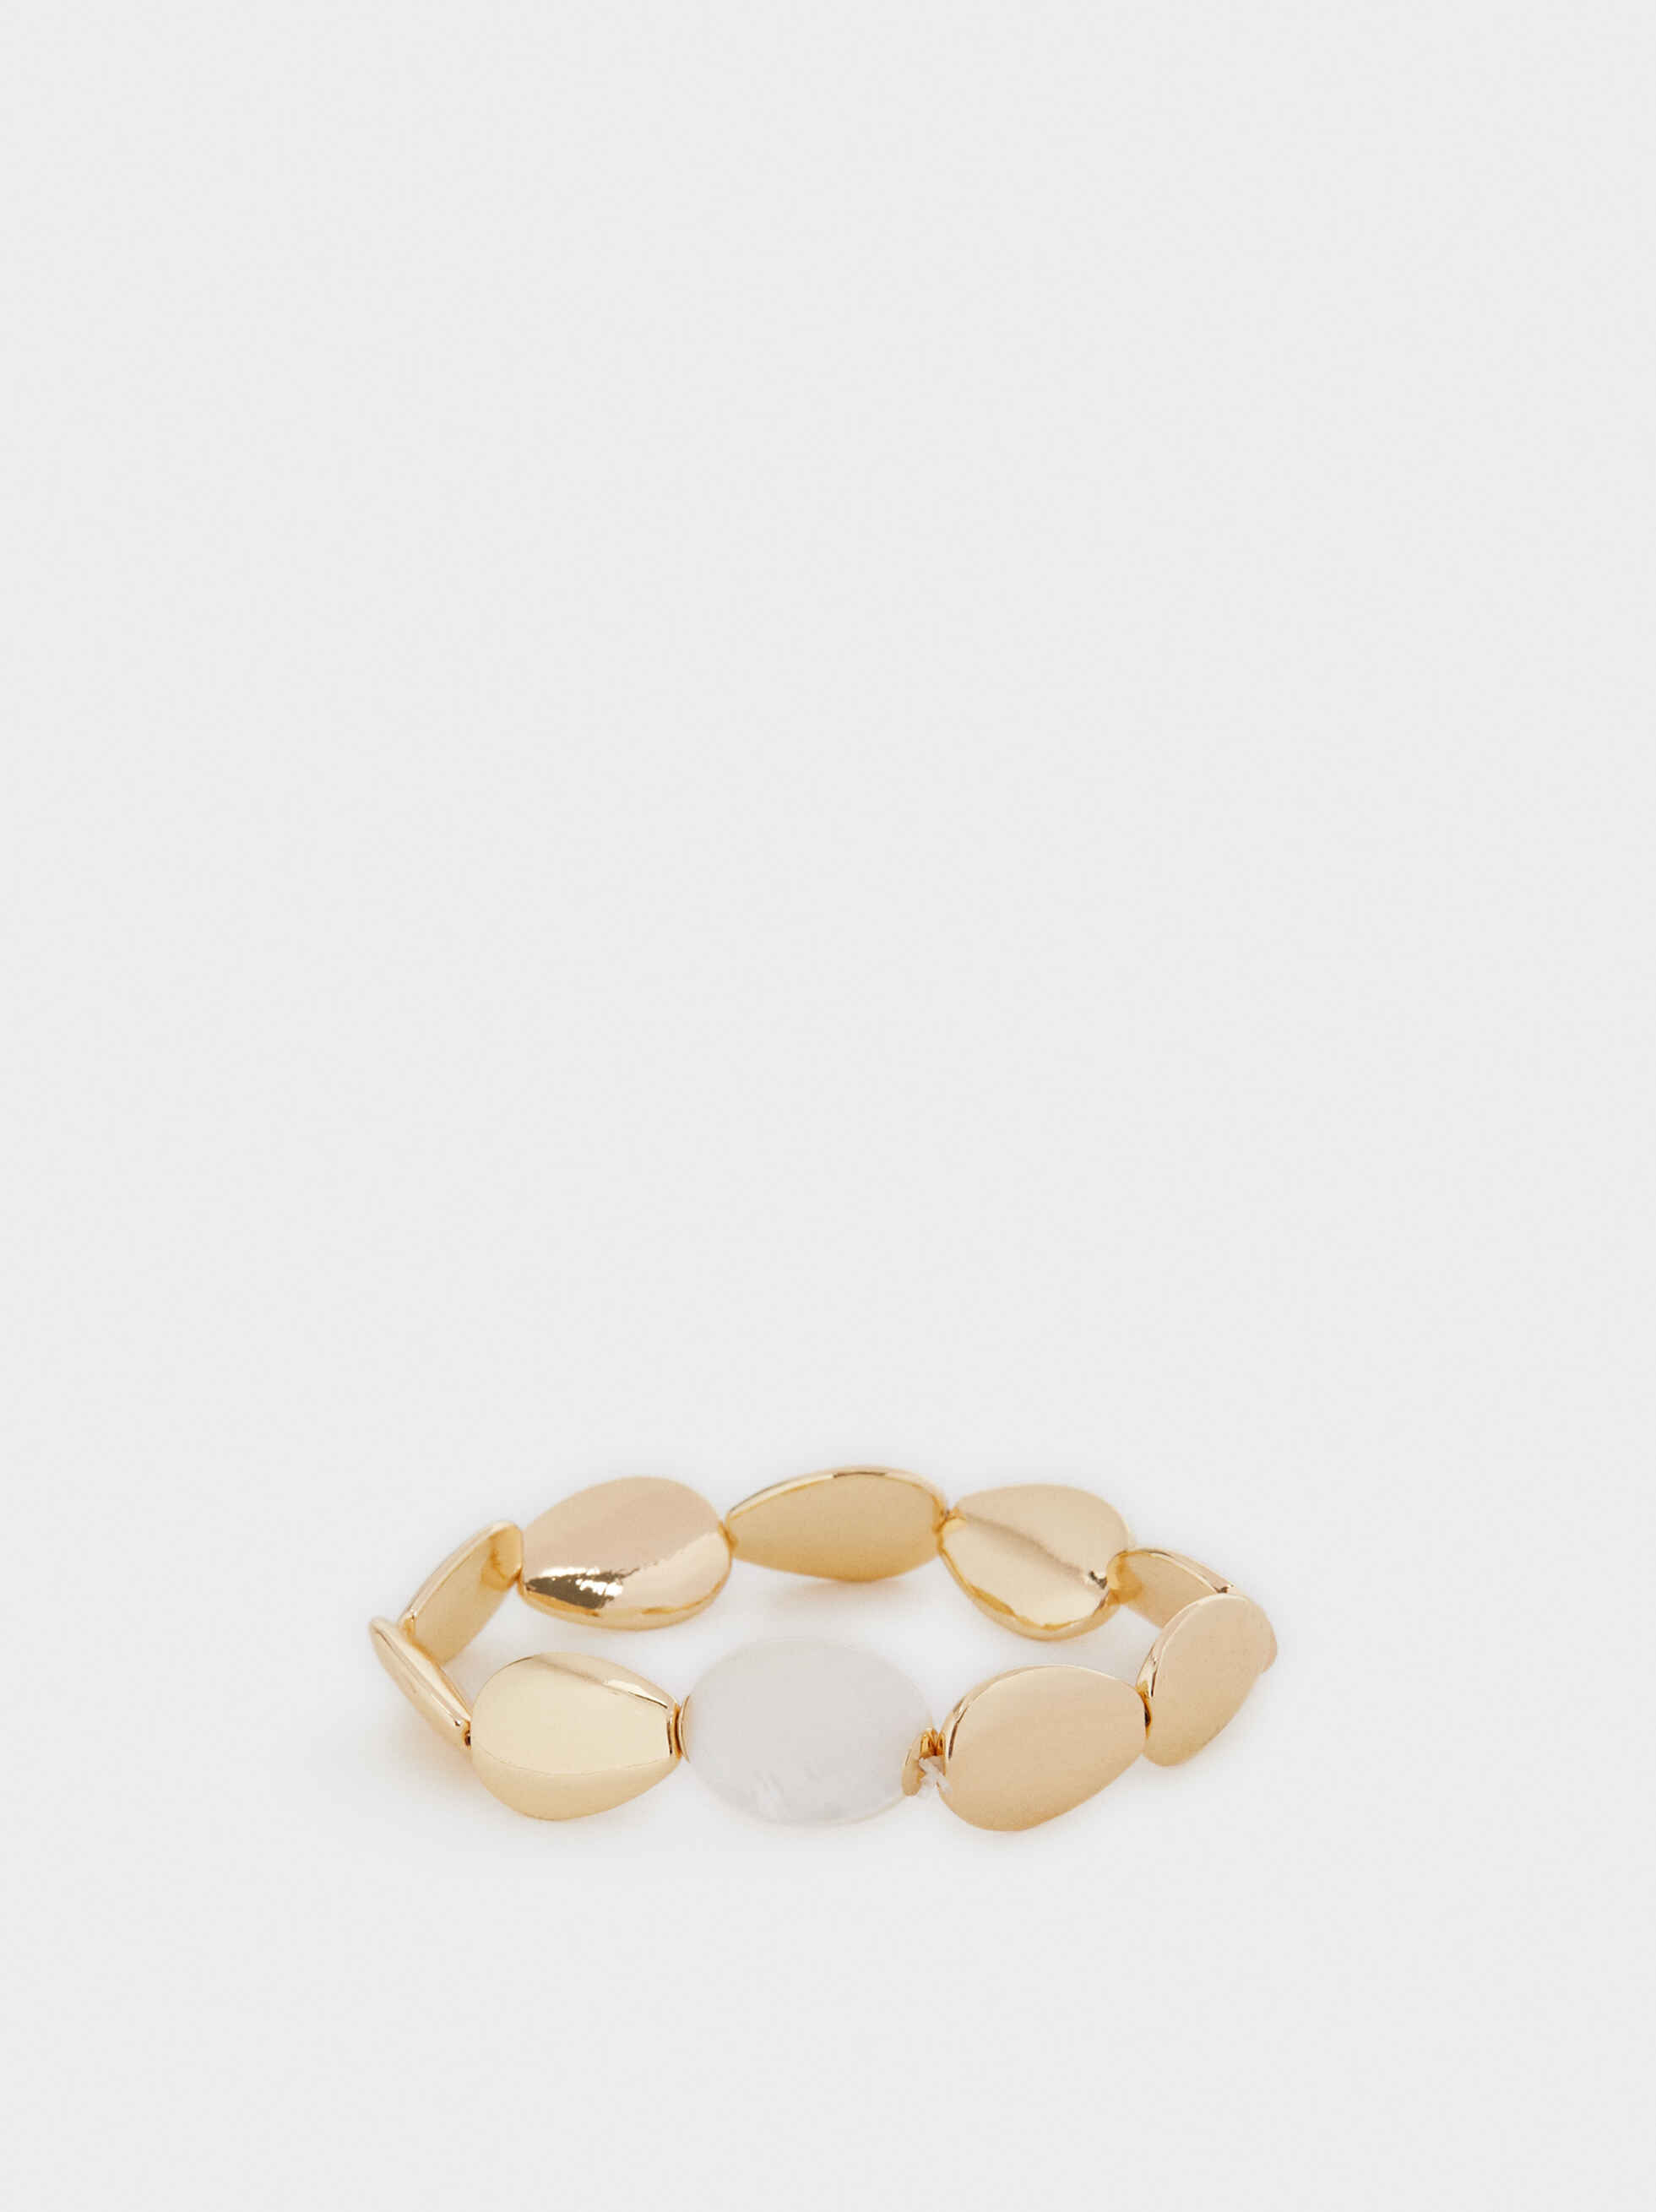 Gold Elastic Bracelet With Shells, , hi-res